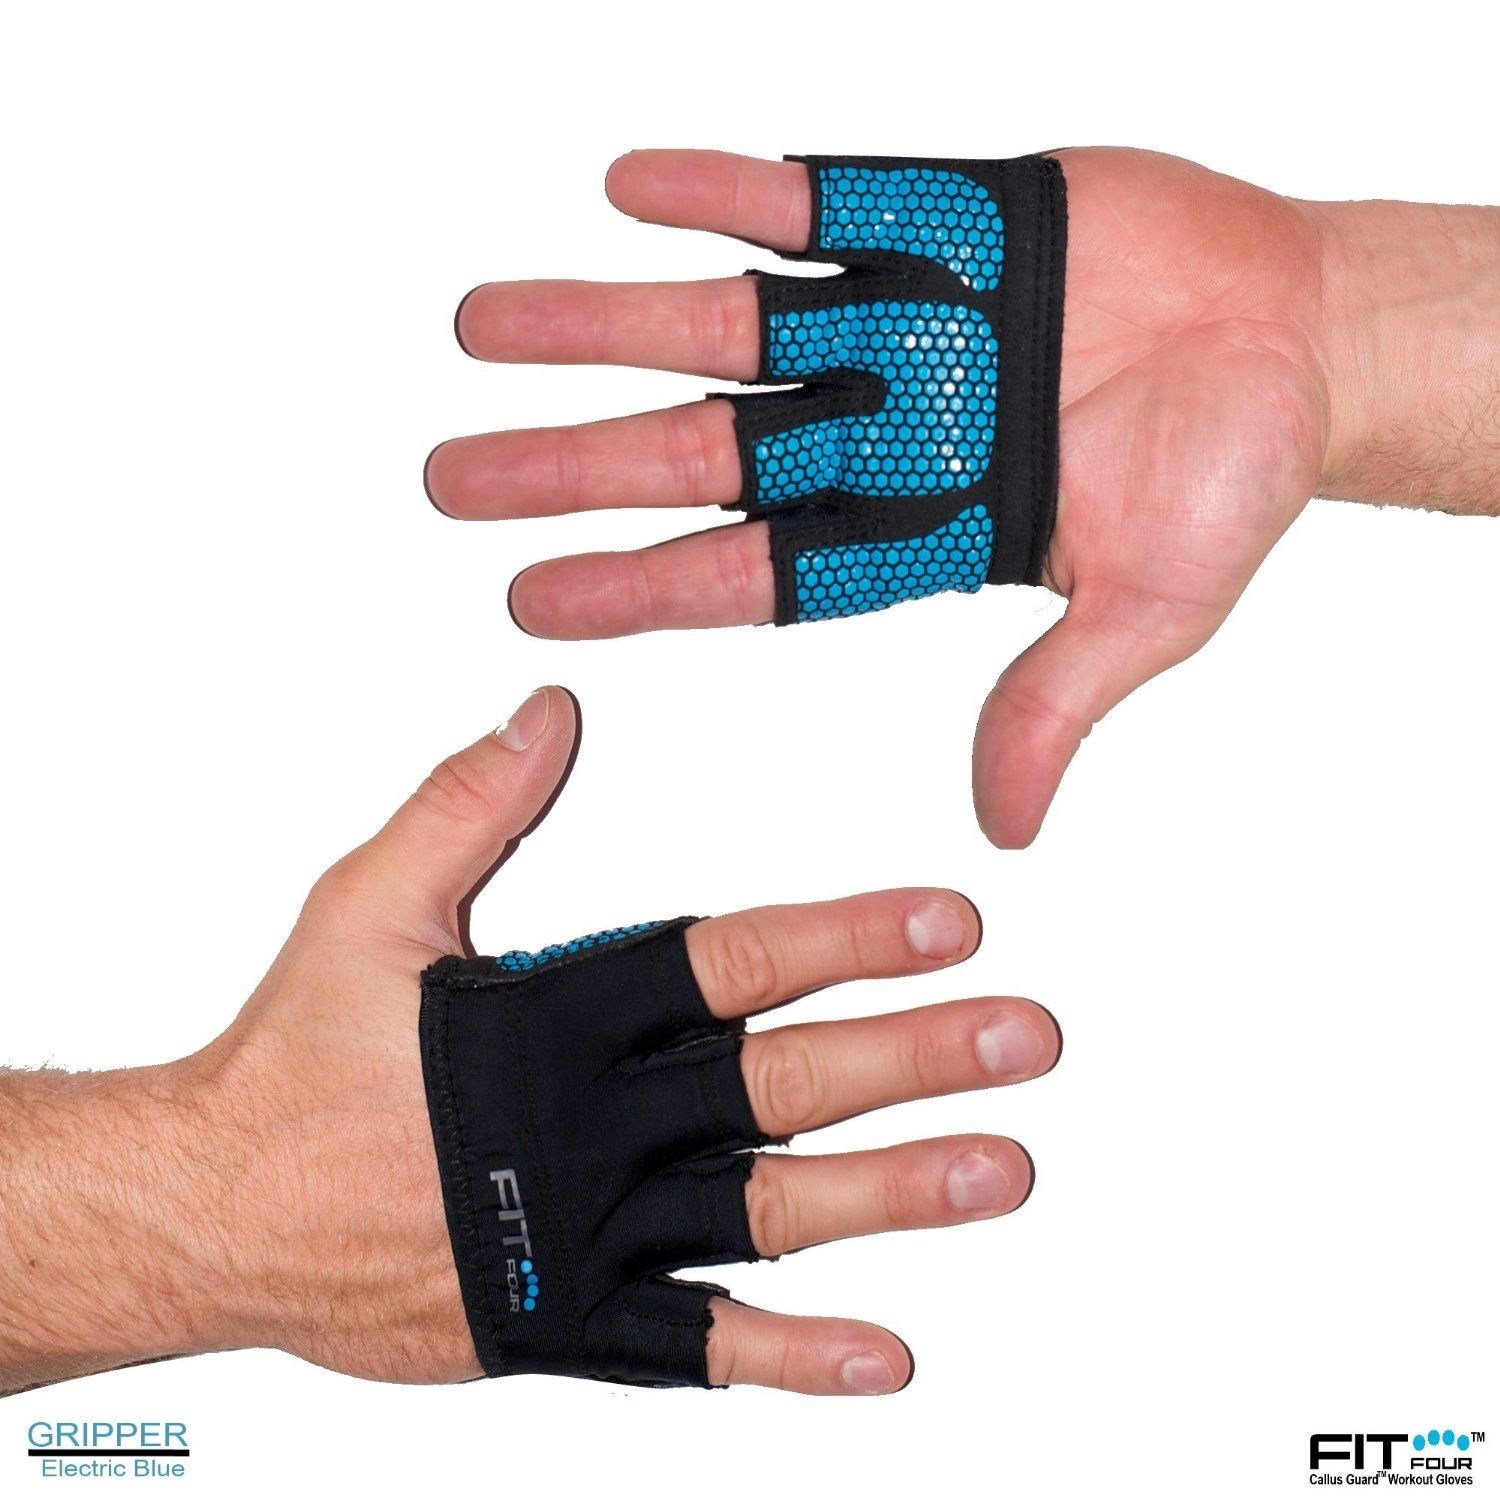 ad434e07b2aaf Amazon.com : The Gripper Glove | Callus Guard WOD Workout Gloves by ...